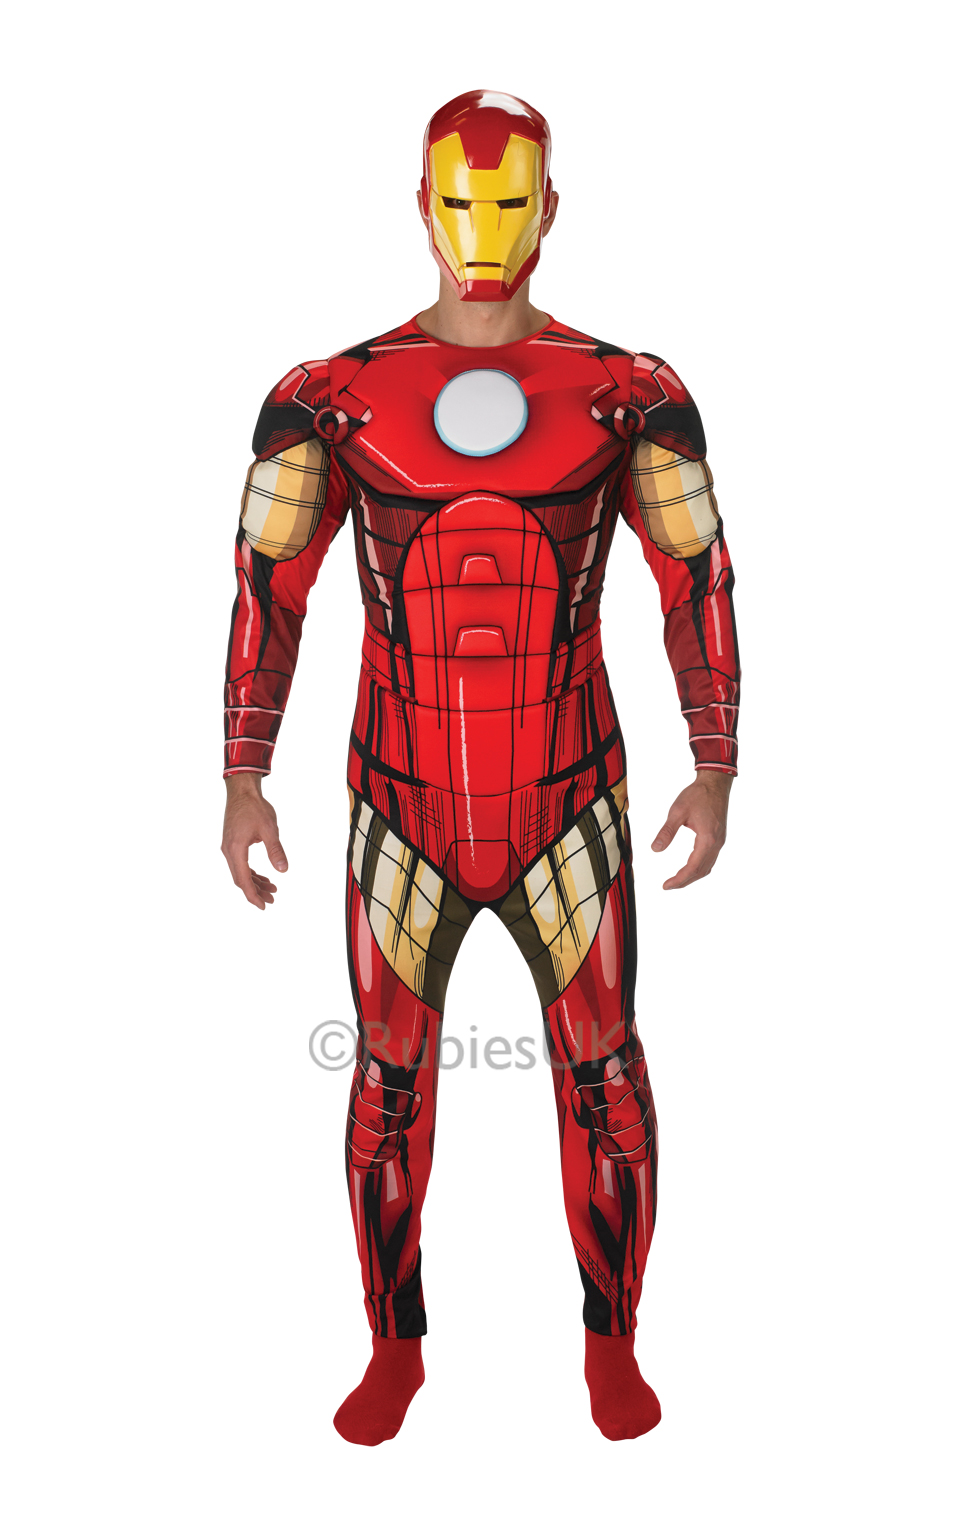 Kids Superhero Capes and Masks, Lachesis Children Fancy Dress Up Costume, Cosplay Cloaks Set Double Sided Stain Party Supplies, Batman, Spiderman, Superman and Iron Man .